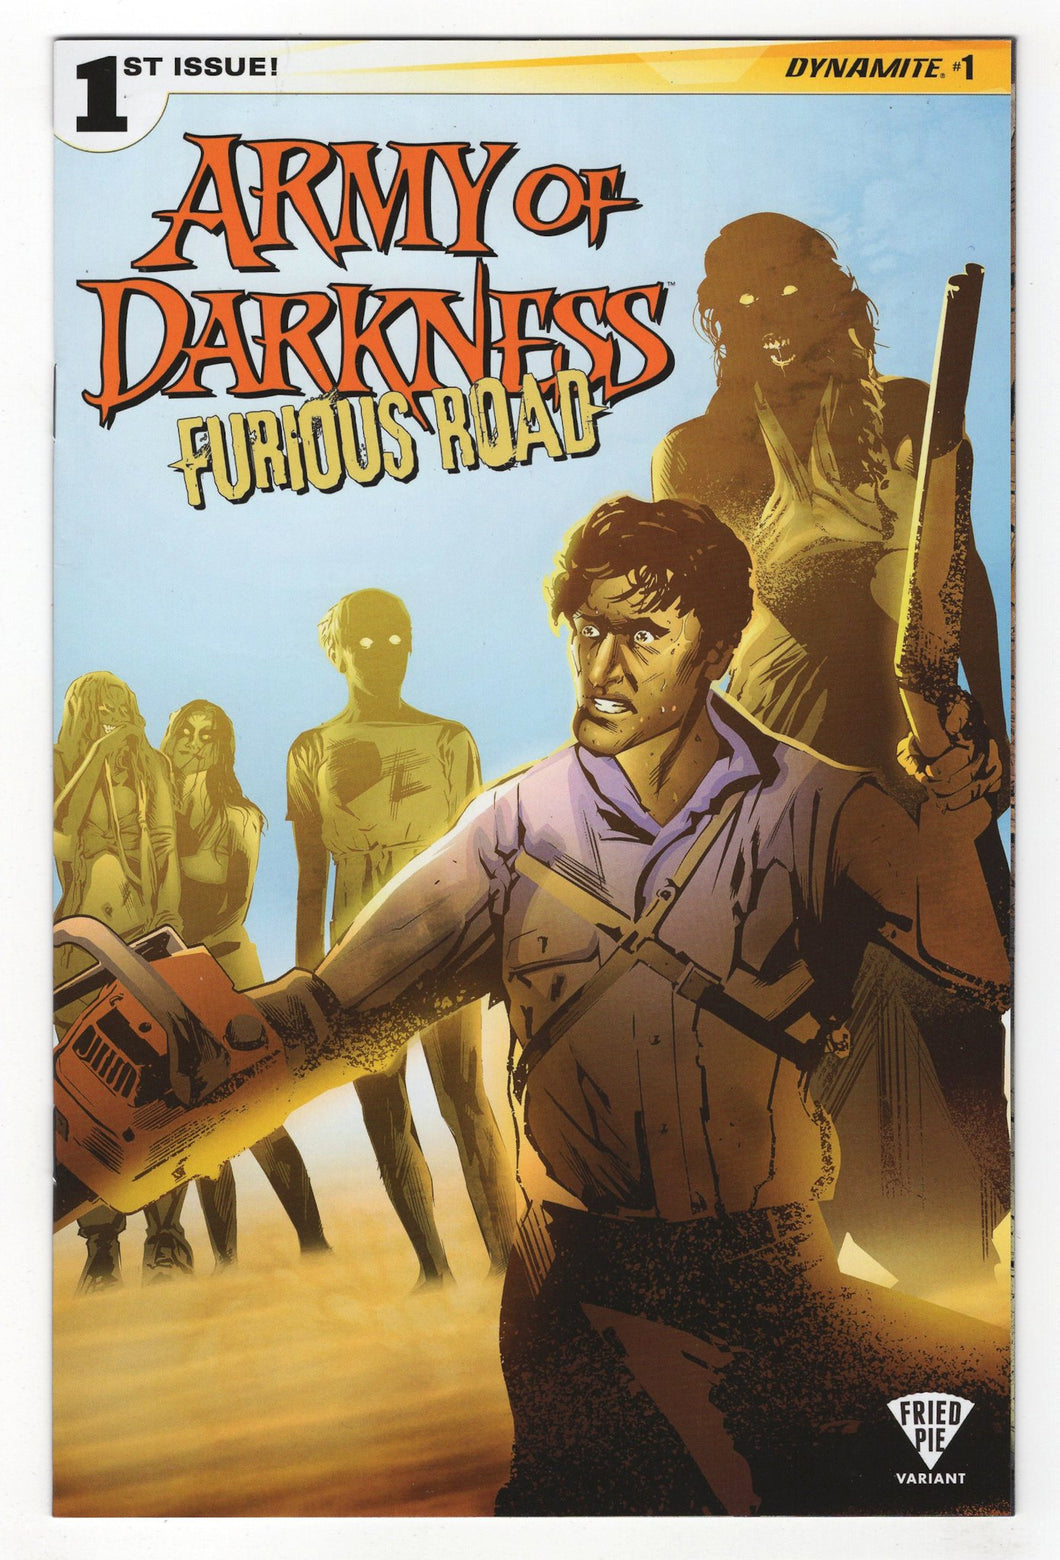 Army of Darkness Furious Road #1 Variant Cover Front